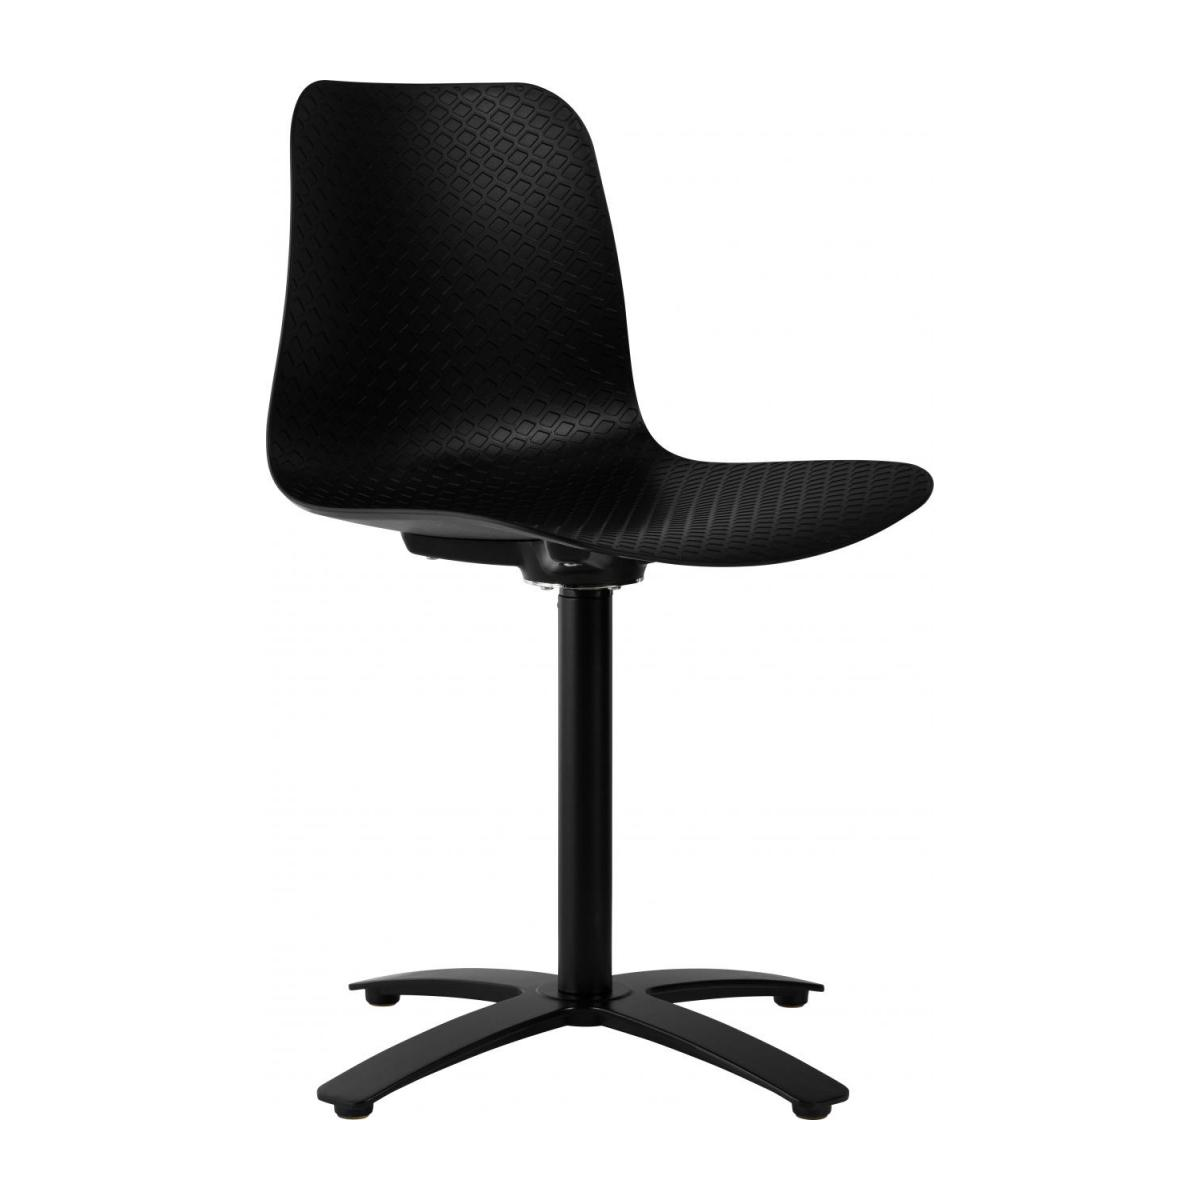 Black office chair in polypropylene n°1